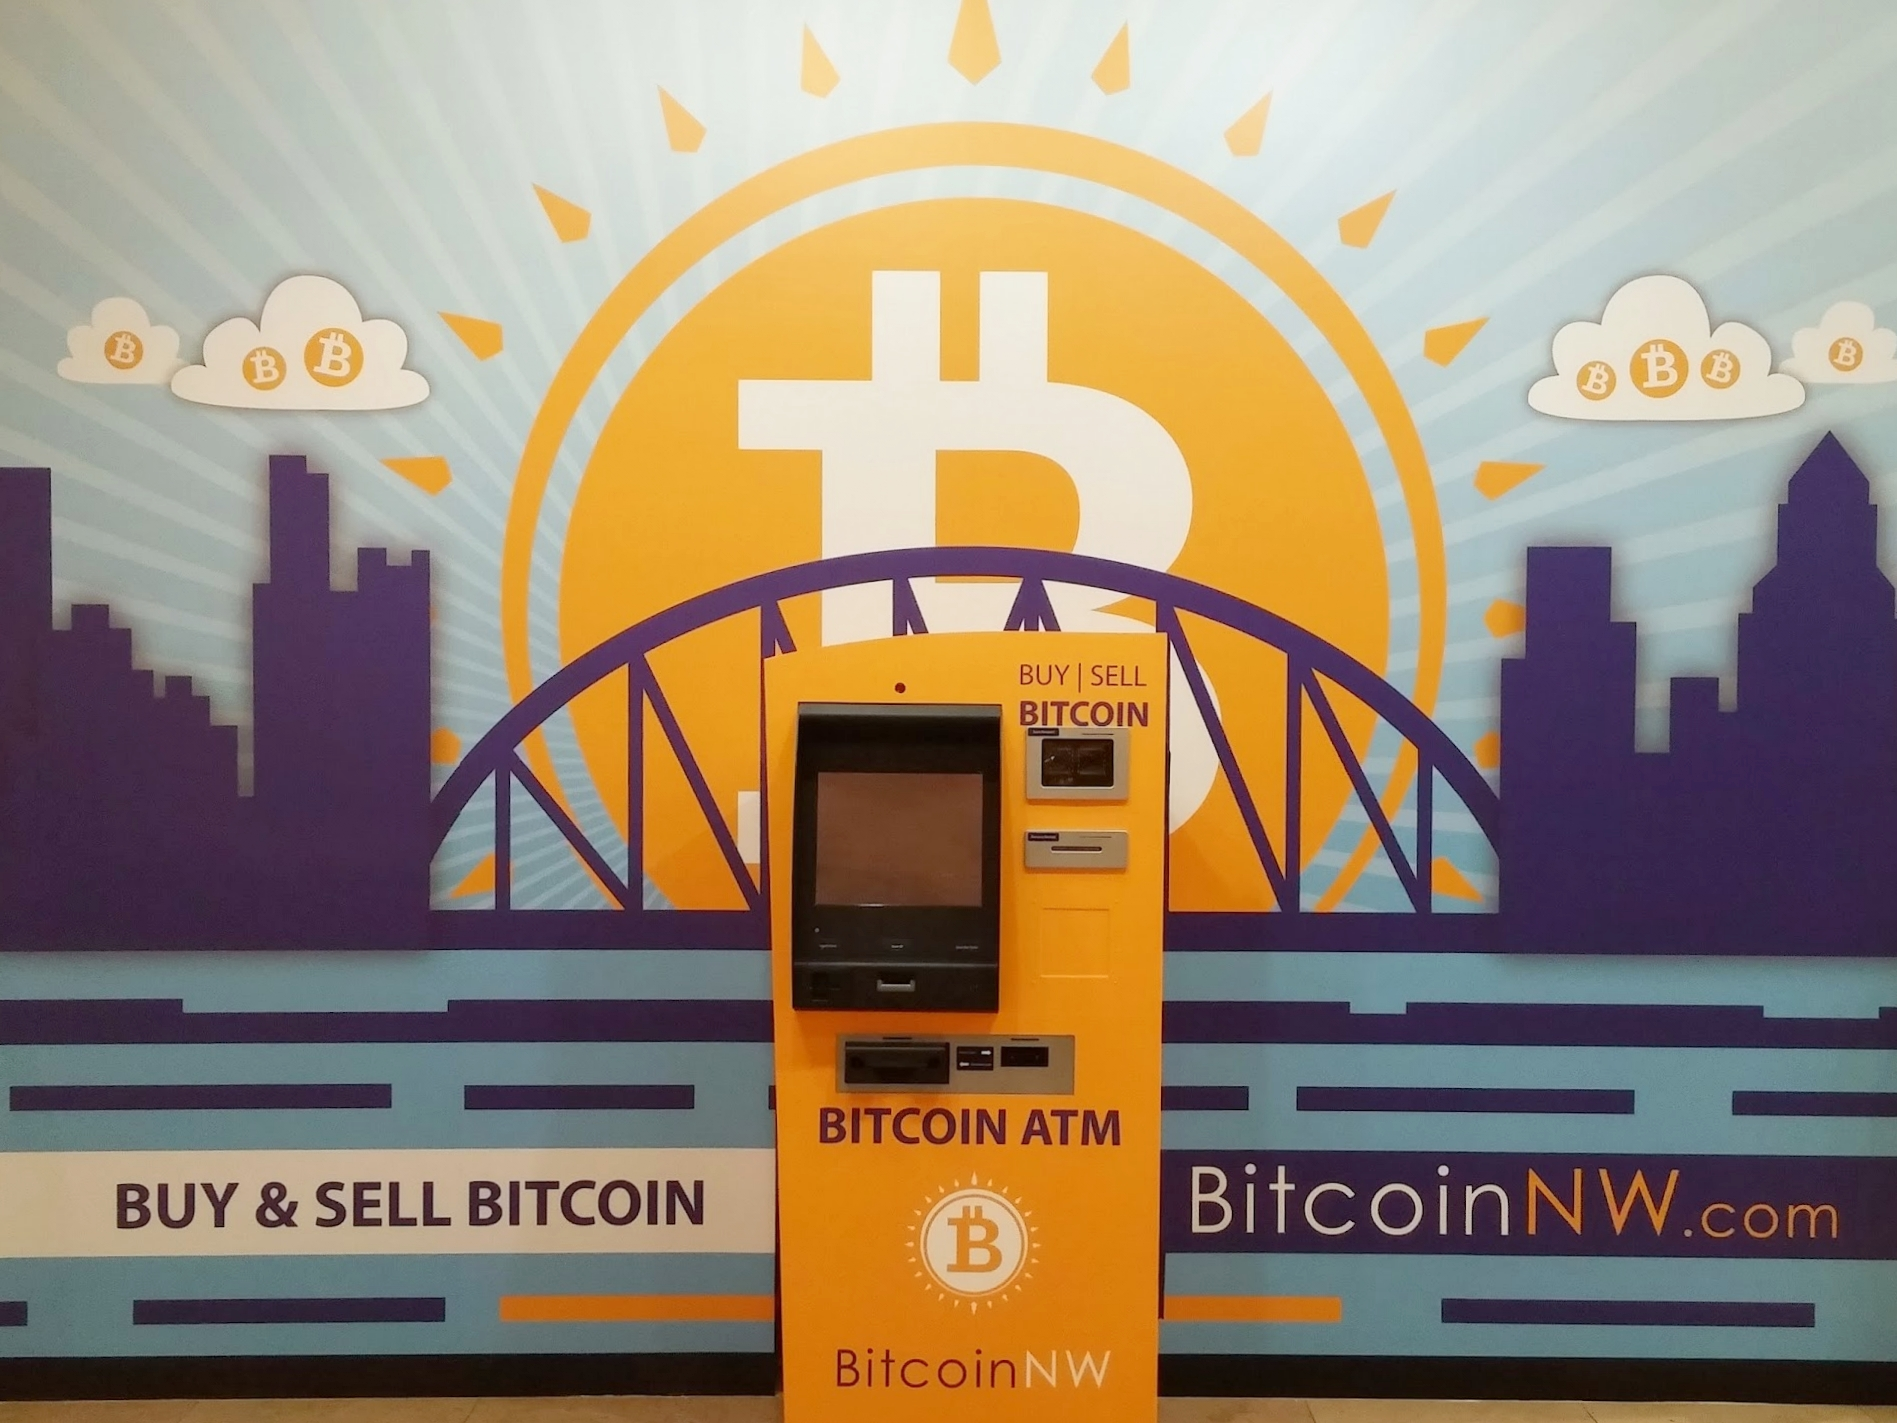 - Headquartered in Portland with kiosk locations throughout Oregon and Northern California, our mission is to make digital currency more accessible to the general public.Eliminate the need for online digital exchanges, and buy and sell bitcoin directly with cash. Simply scan your QR code to transfer coin easily and safely between our system and your existing wallet.